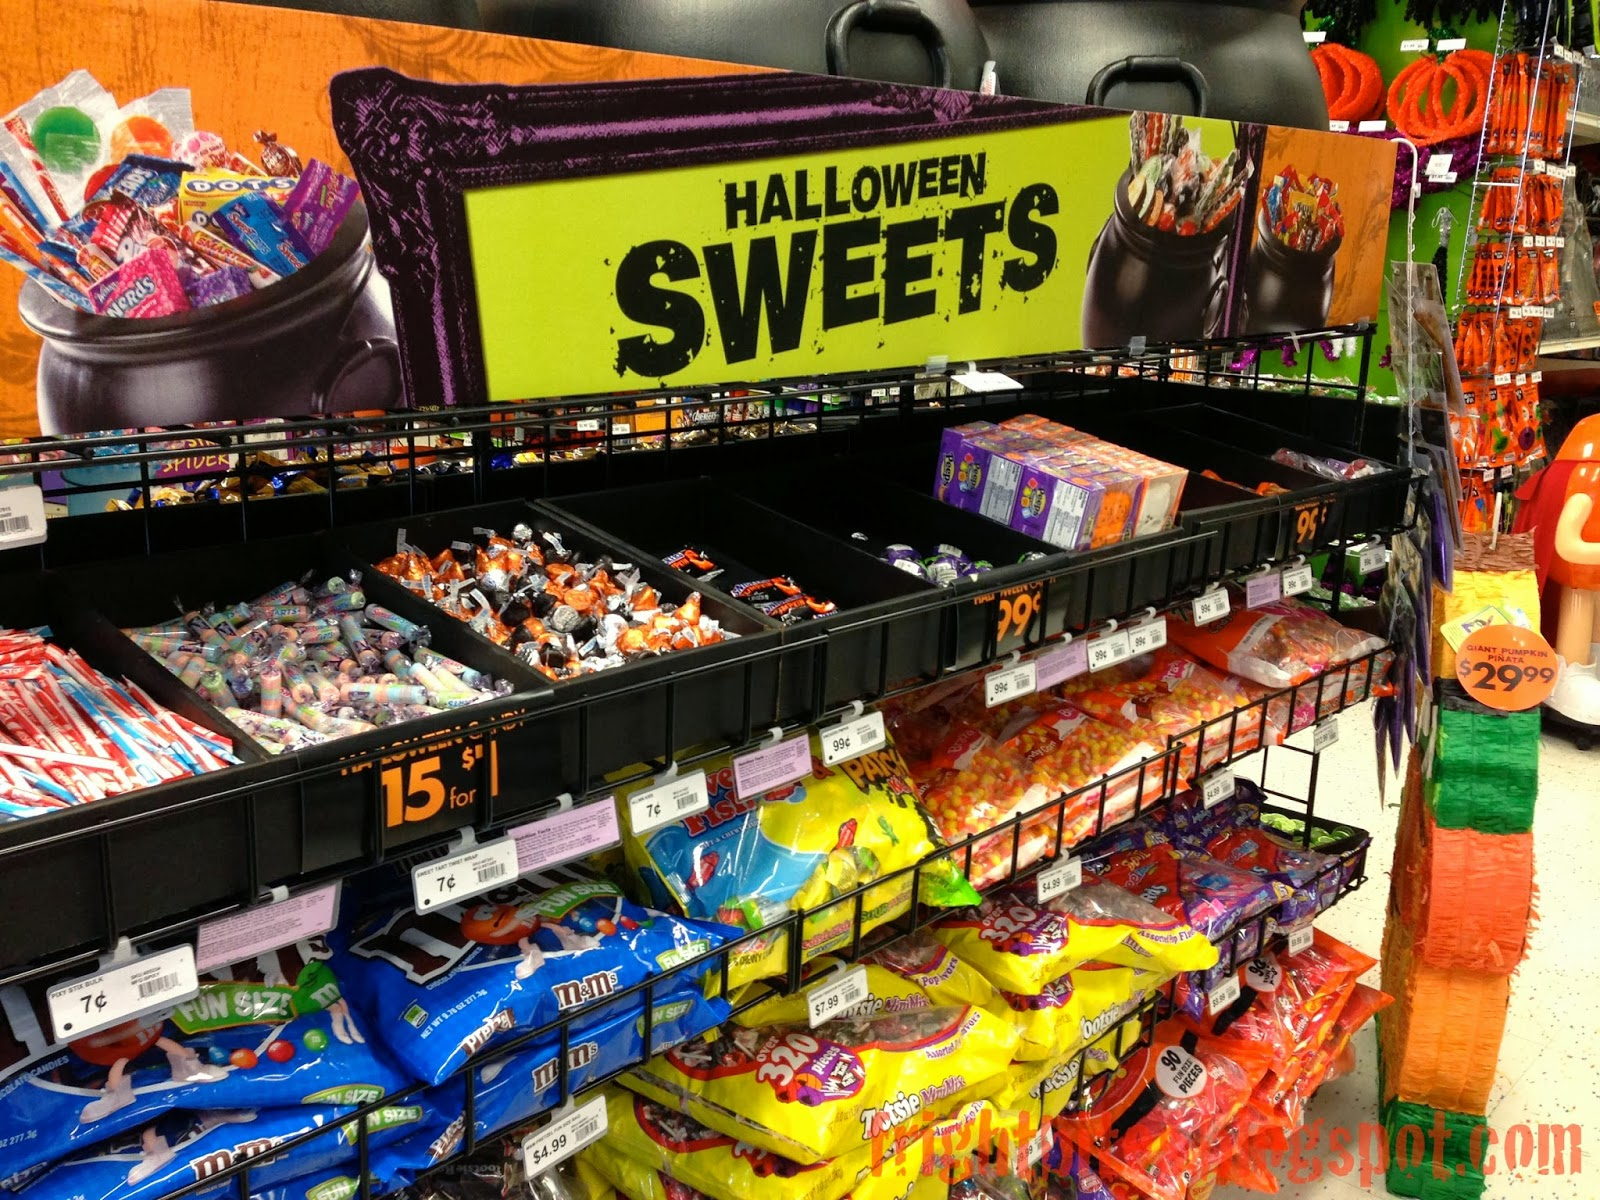 Whether your tastes lean towards the gruesome and gory or rest within the safer confines of kid-friendly and cute, Party City offers a large and ever-growing selection of indoor and outdoor Halloween decor, fog machines, yard and hanging props, treat bags and party favors, and complete Halloween party themes, all carefully matched to save you.